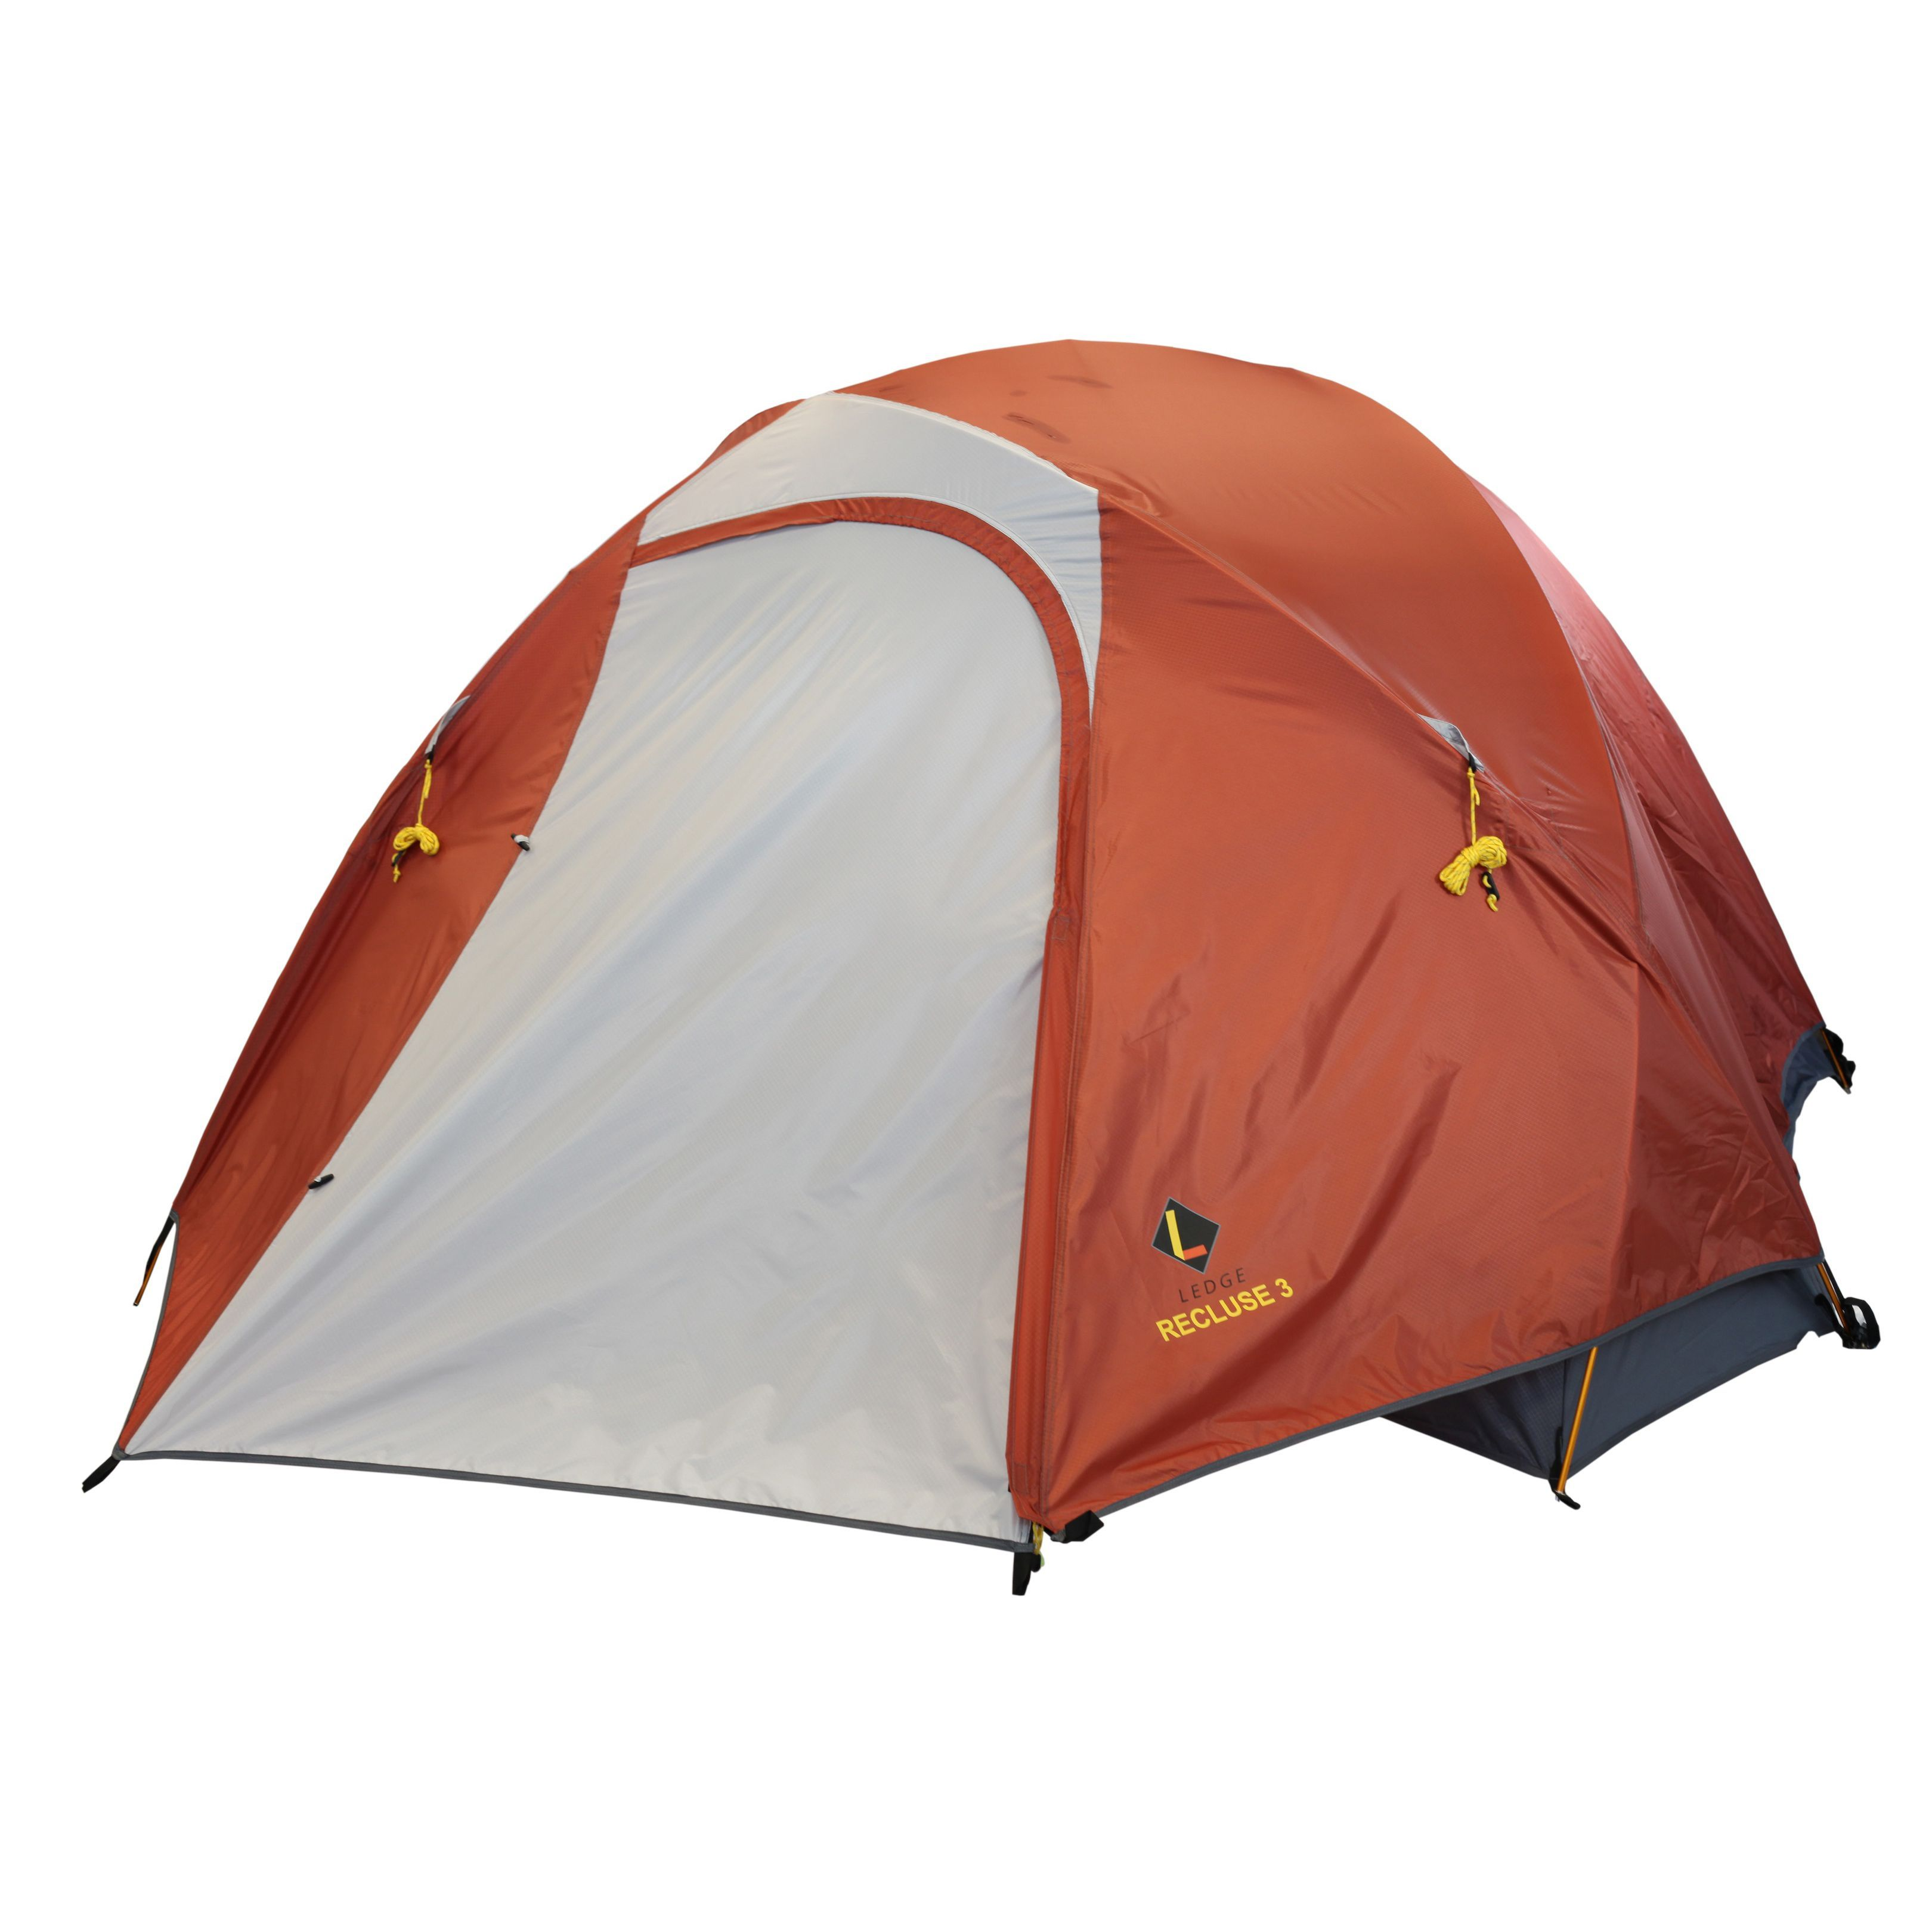 Ledge Recluse 3-person lightweight backpacking tent is packed with featuresTent assembles quickly and easily  sc 1 st  Pinterest & Ledge Recluse 3-person lightweight backpacking tent is packed with ...